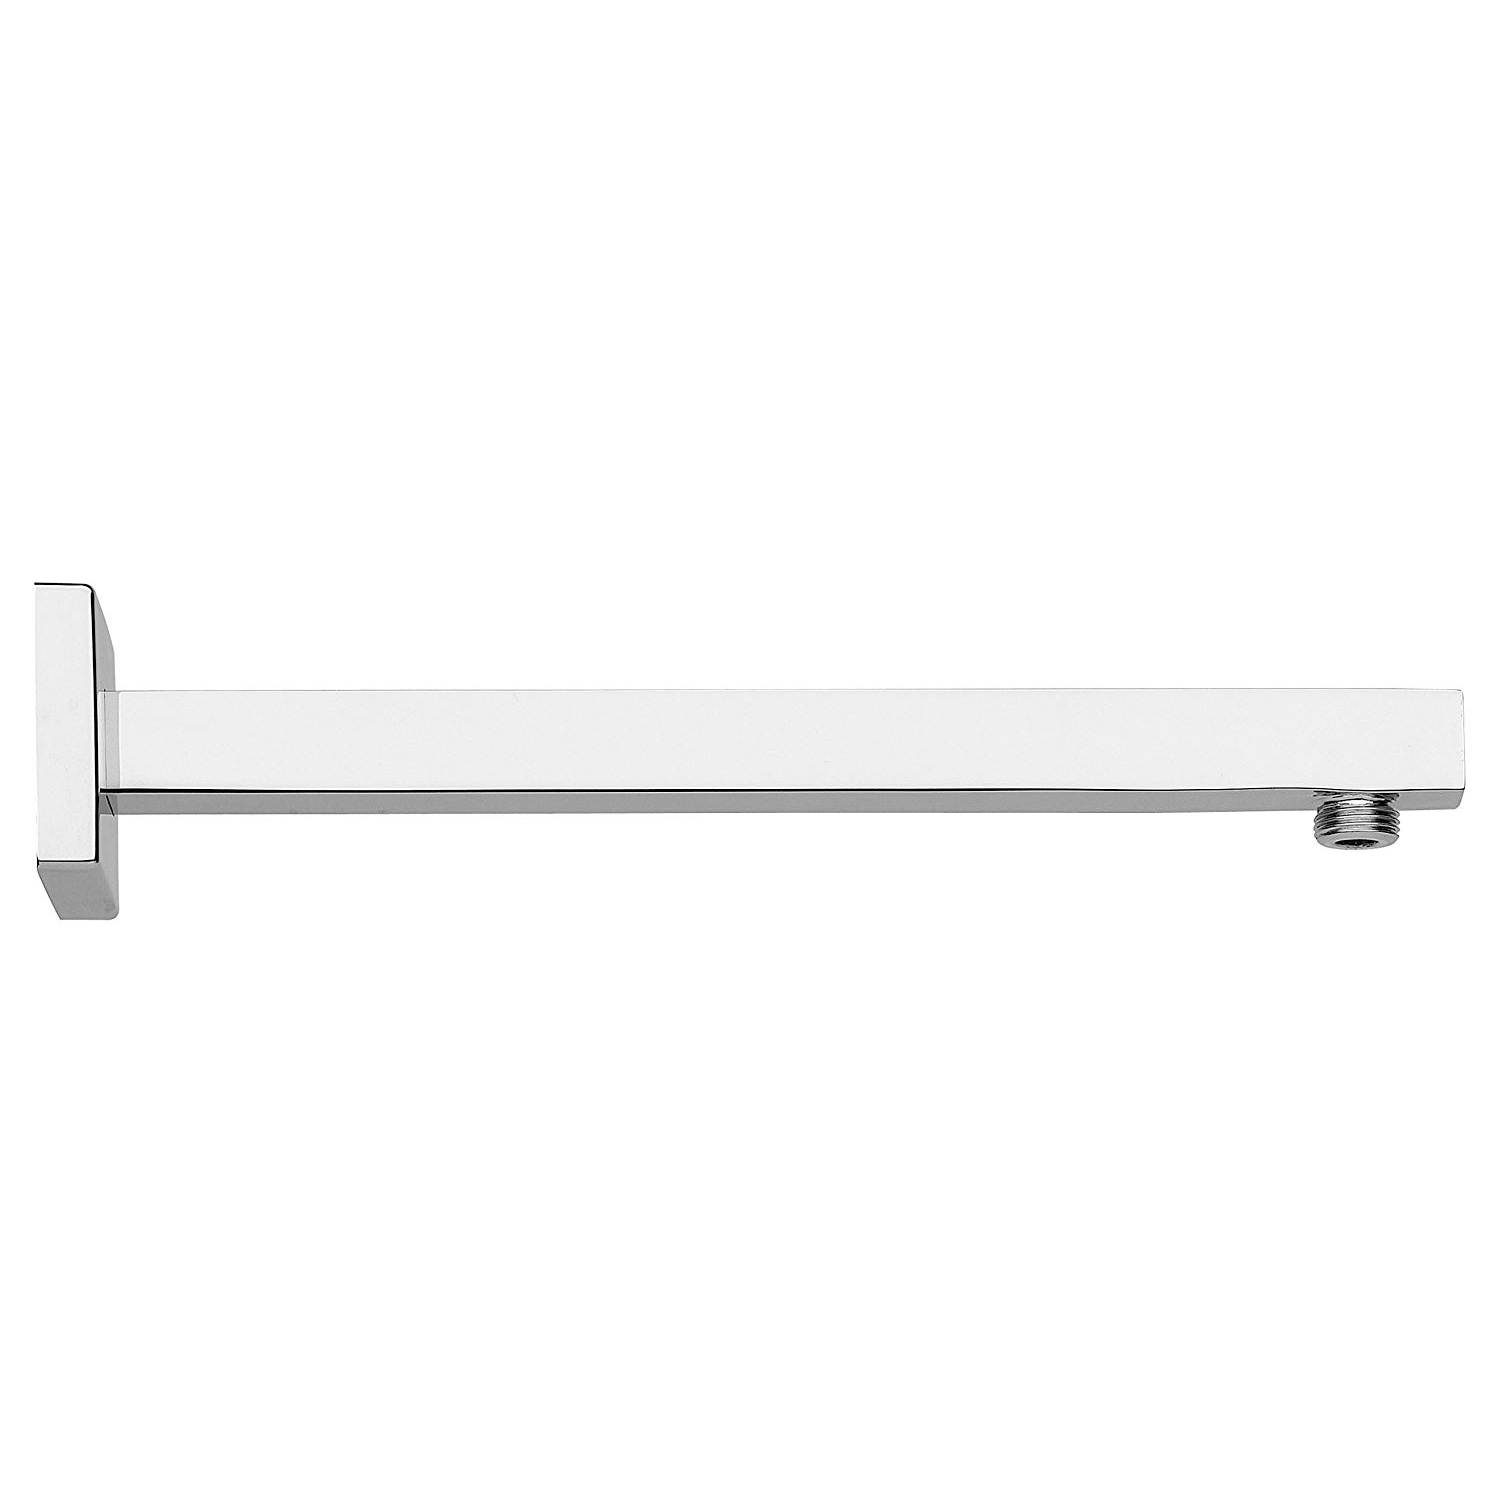 LaToscana-SQCR74412 Chrome 12 in. wall mount shower arm with strengthened fixing